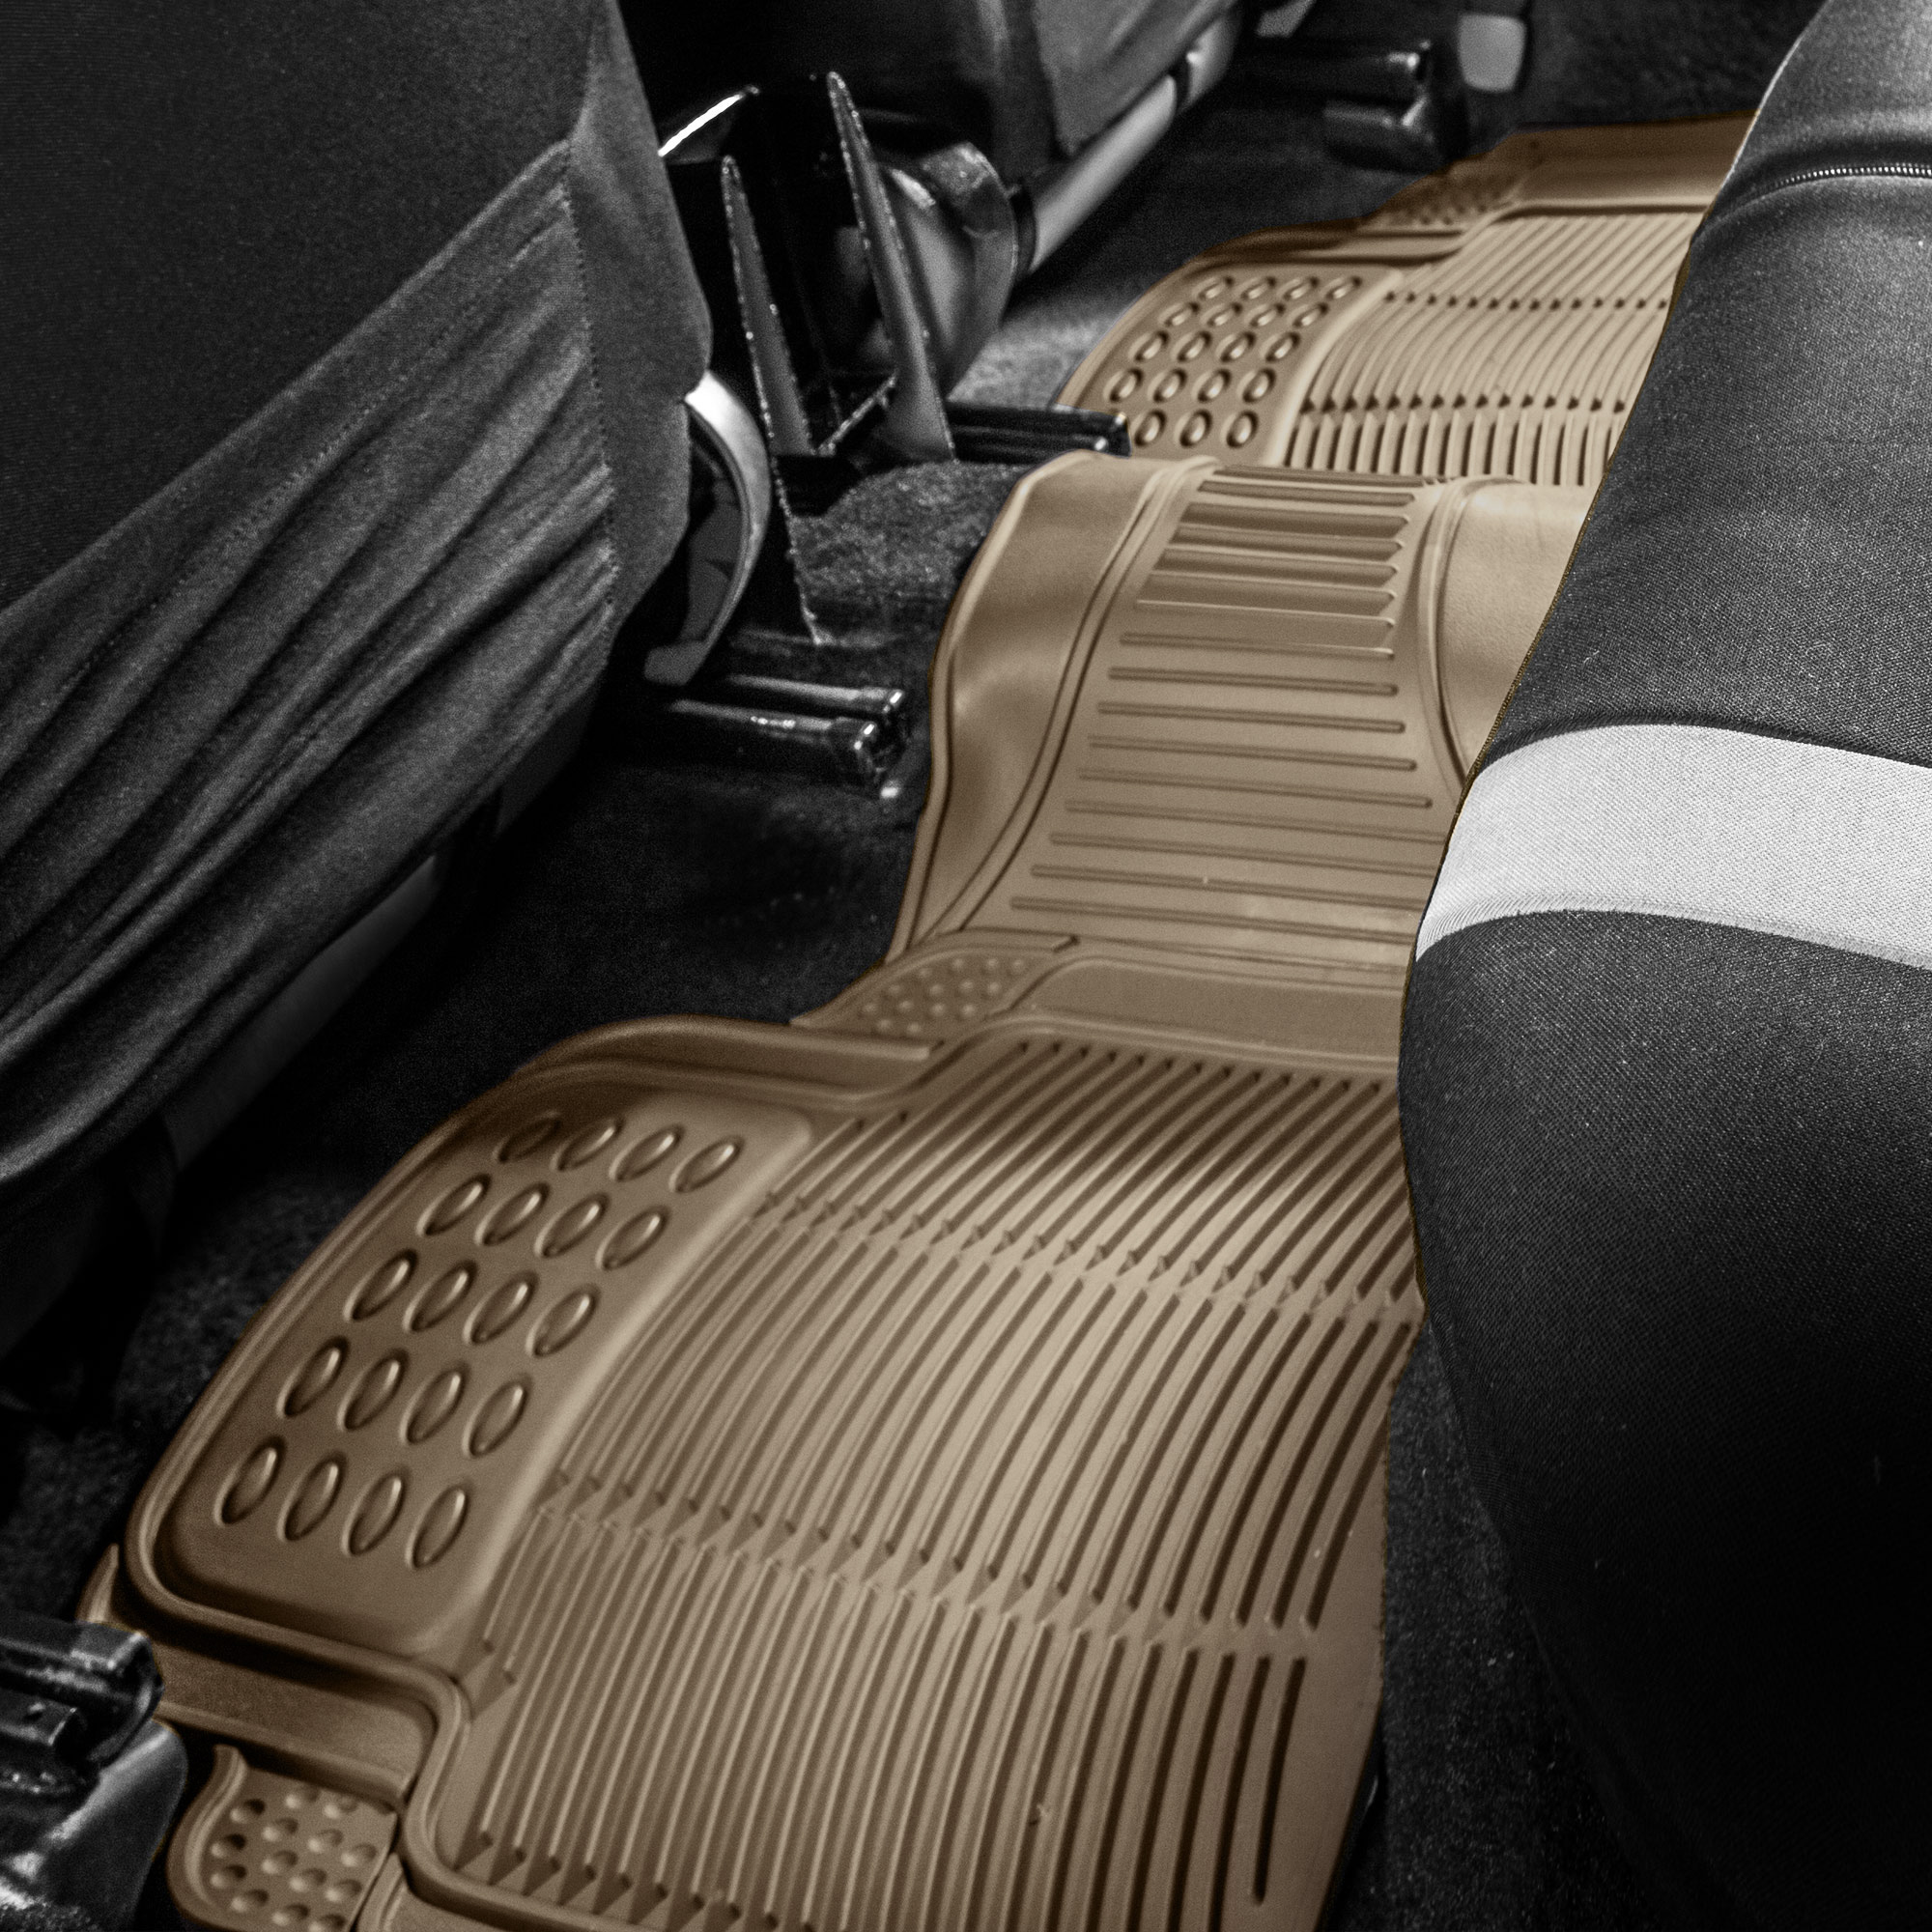 Suv Floor Mats >> Details About 1pc Rear Floor Mat For Auto Car Suv Van Beige Trim To Fit All Weather